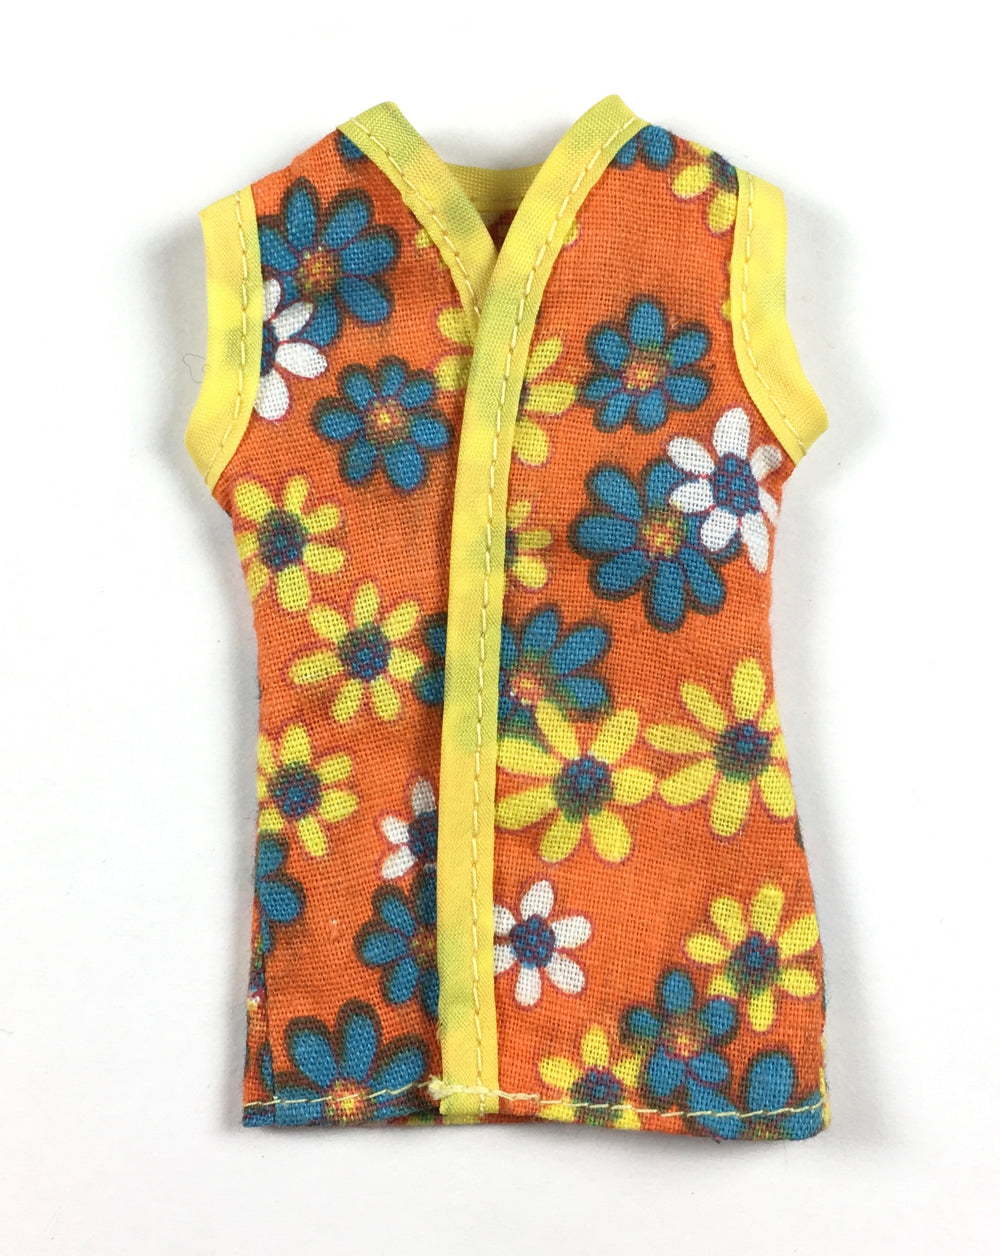 Sindy Sunflower 1975 orange waistcoat 44233